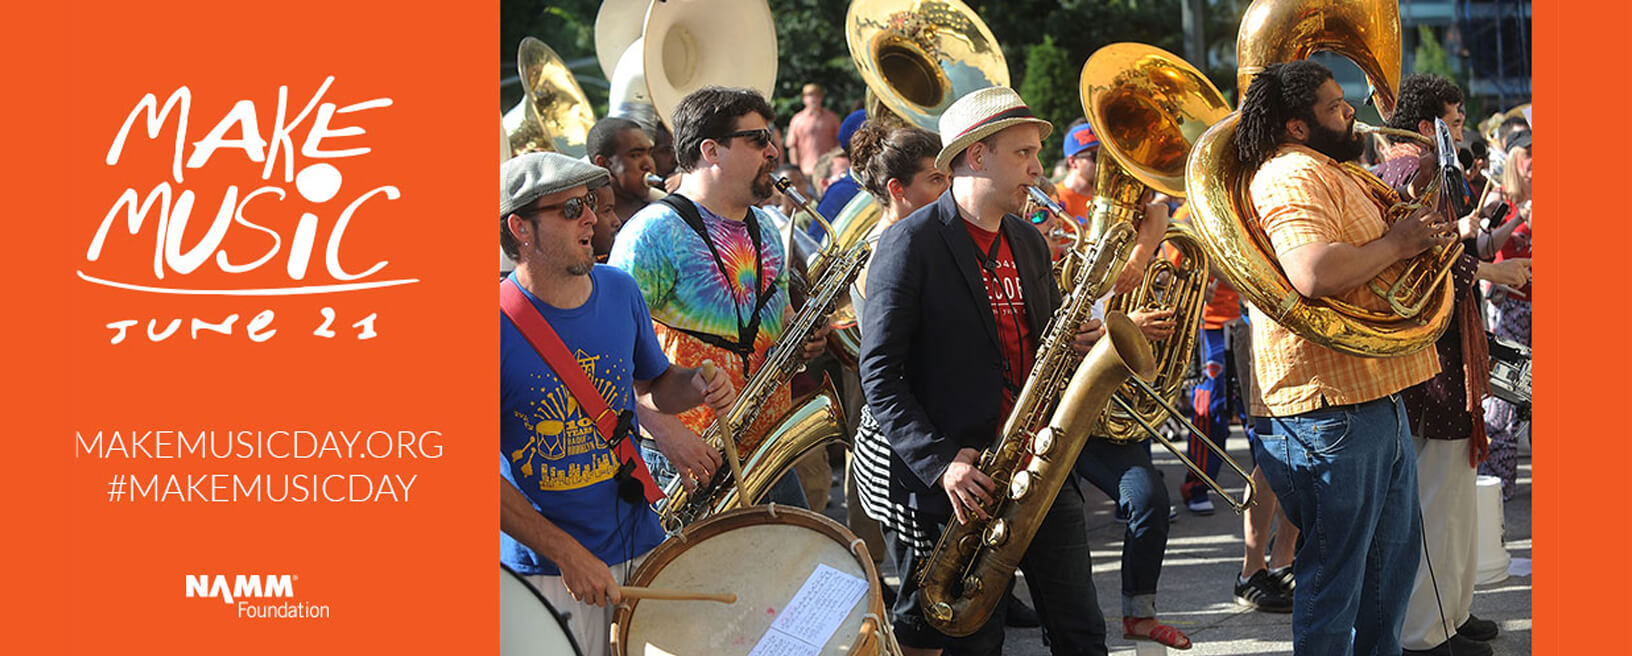 Make Music Day 2019 presented by NAMM Foundation